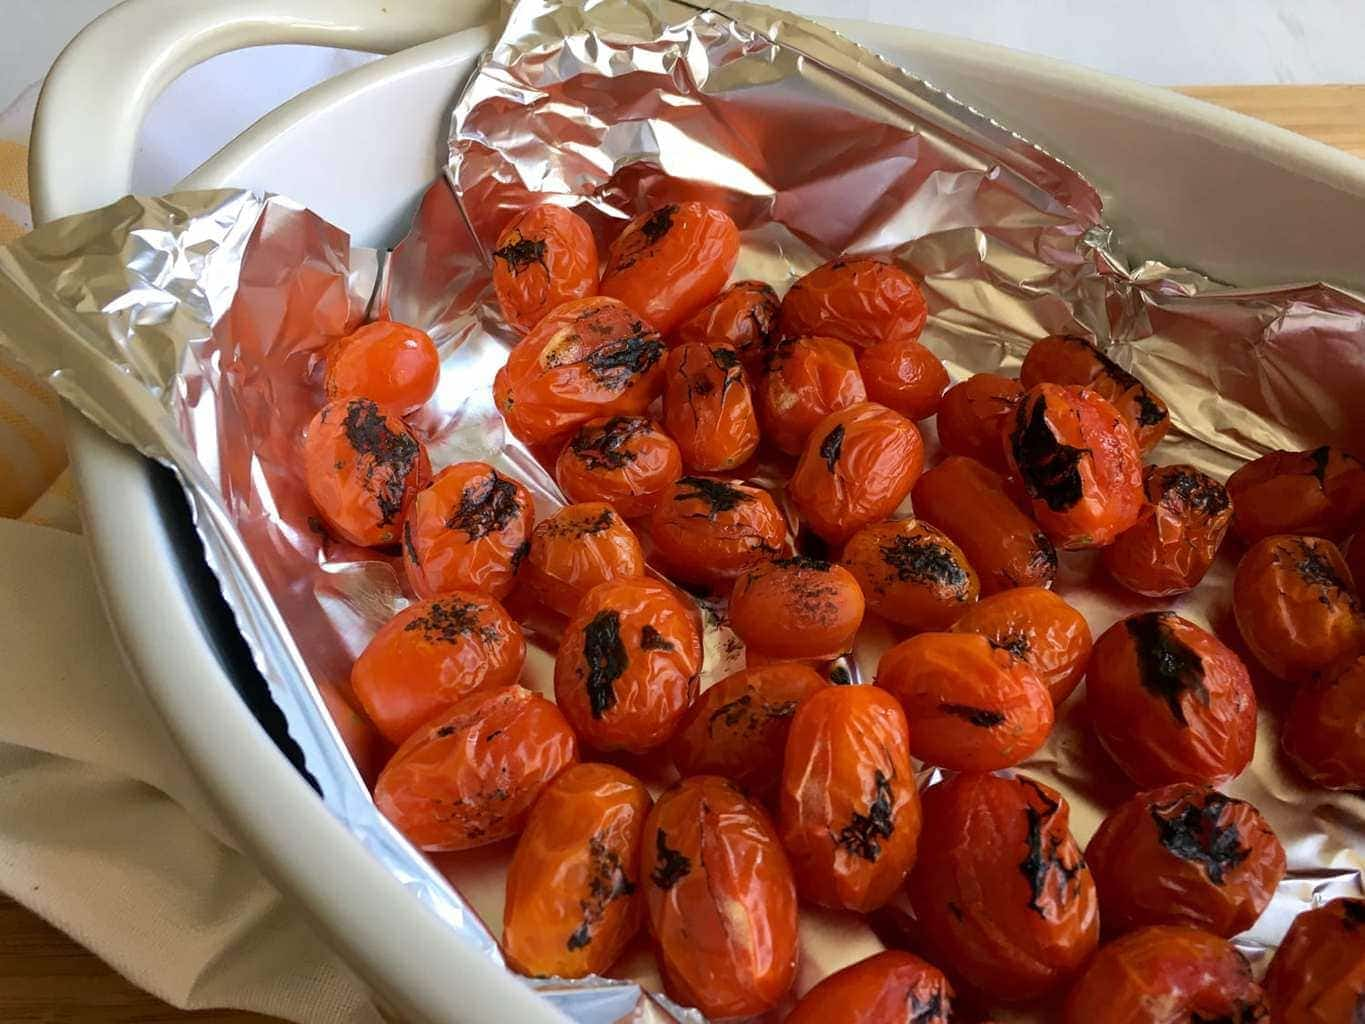 charred tomatoes in a dish for ravioli bake